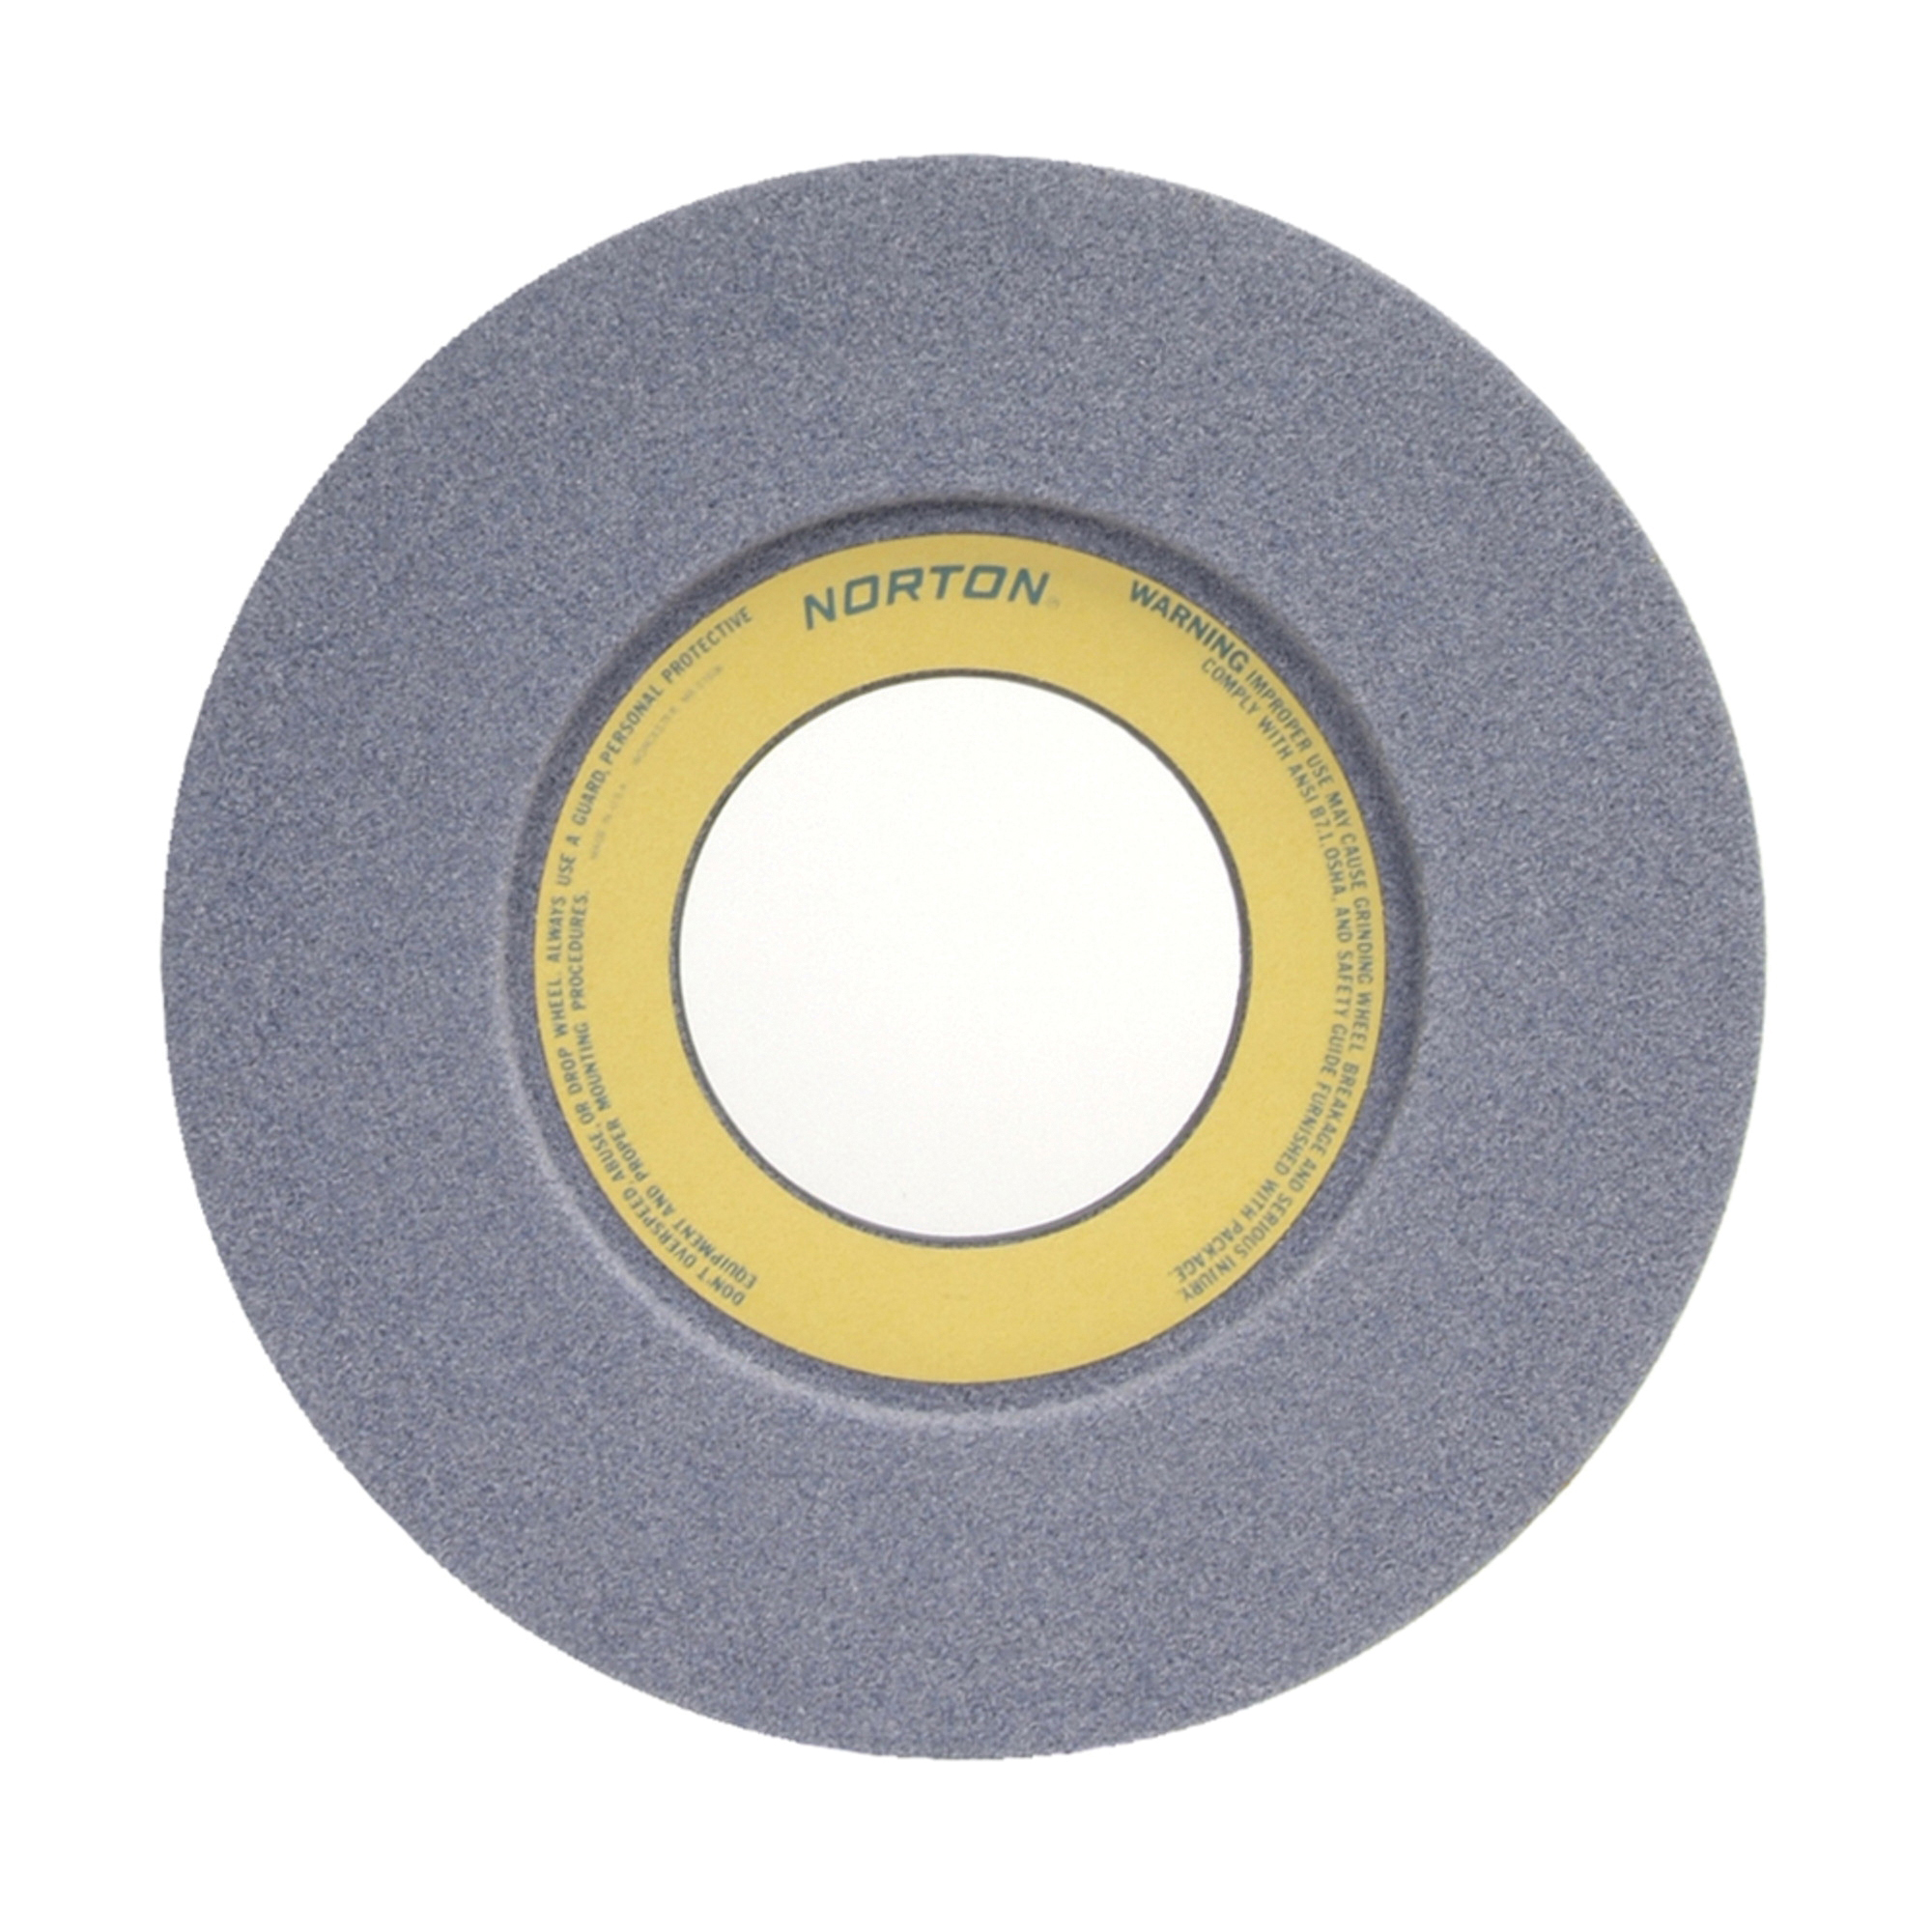 Norton® 66253263172 32A 1-Side Recessed Toolroom Wheel, 12 in Dia x 1-1/2 in THK, 5 in Center Hole, 60 Grit, Aluminum Oxide Abrasive